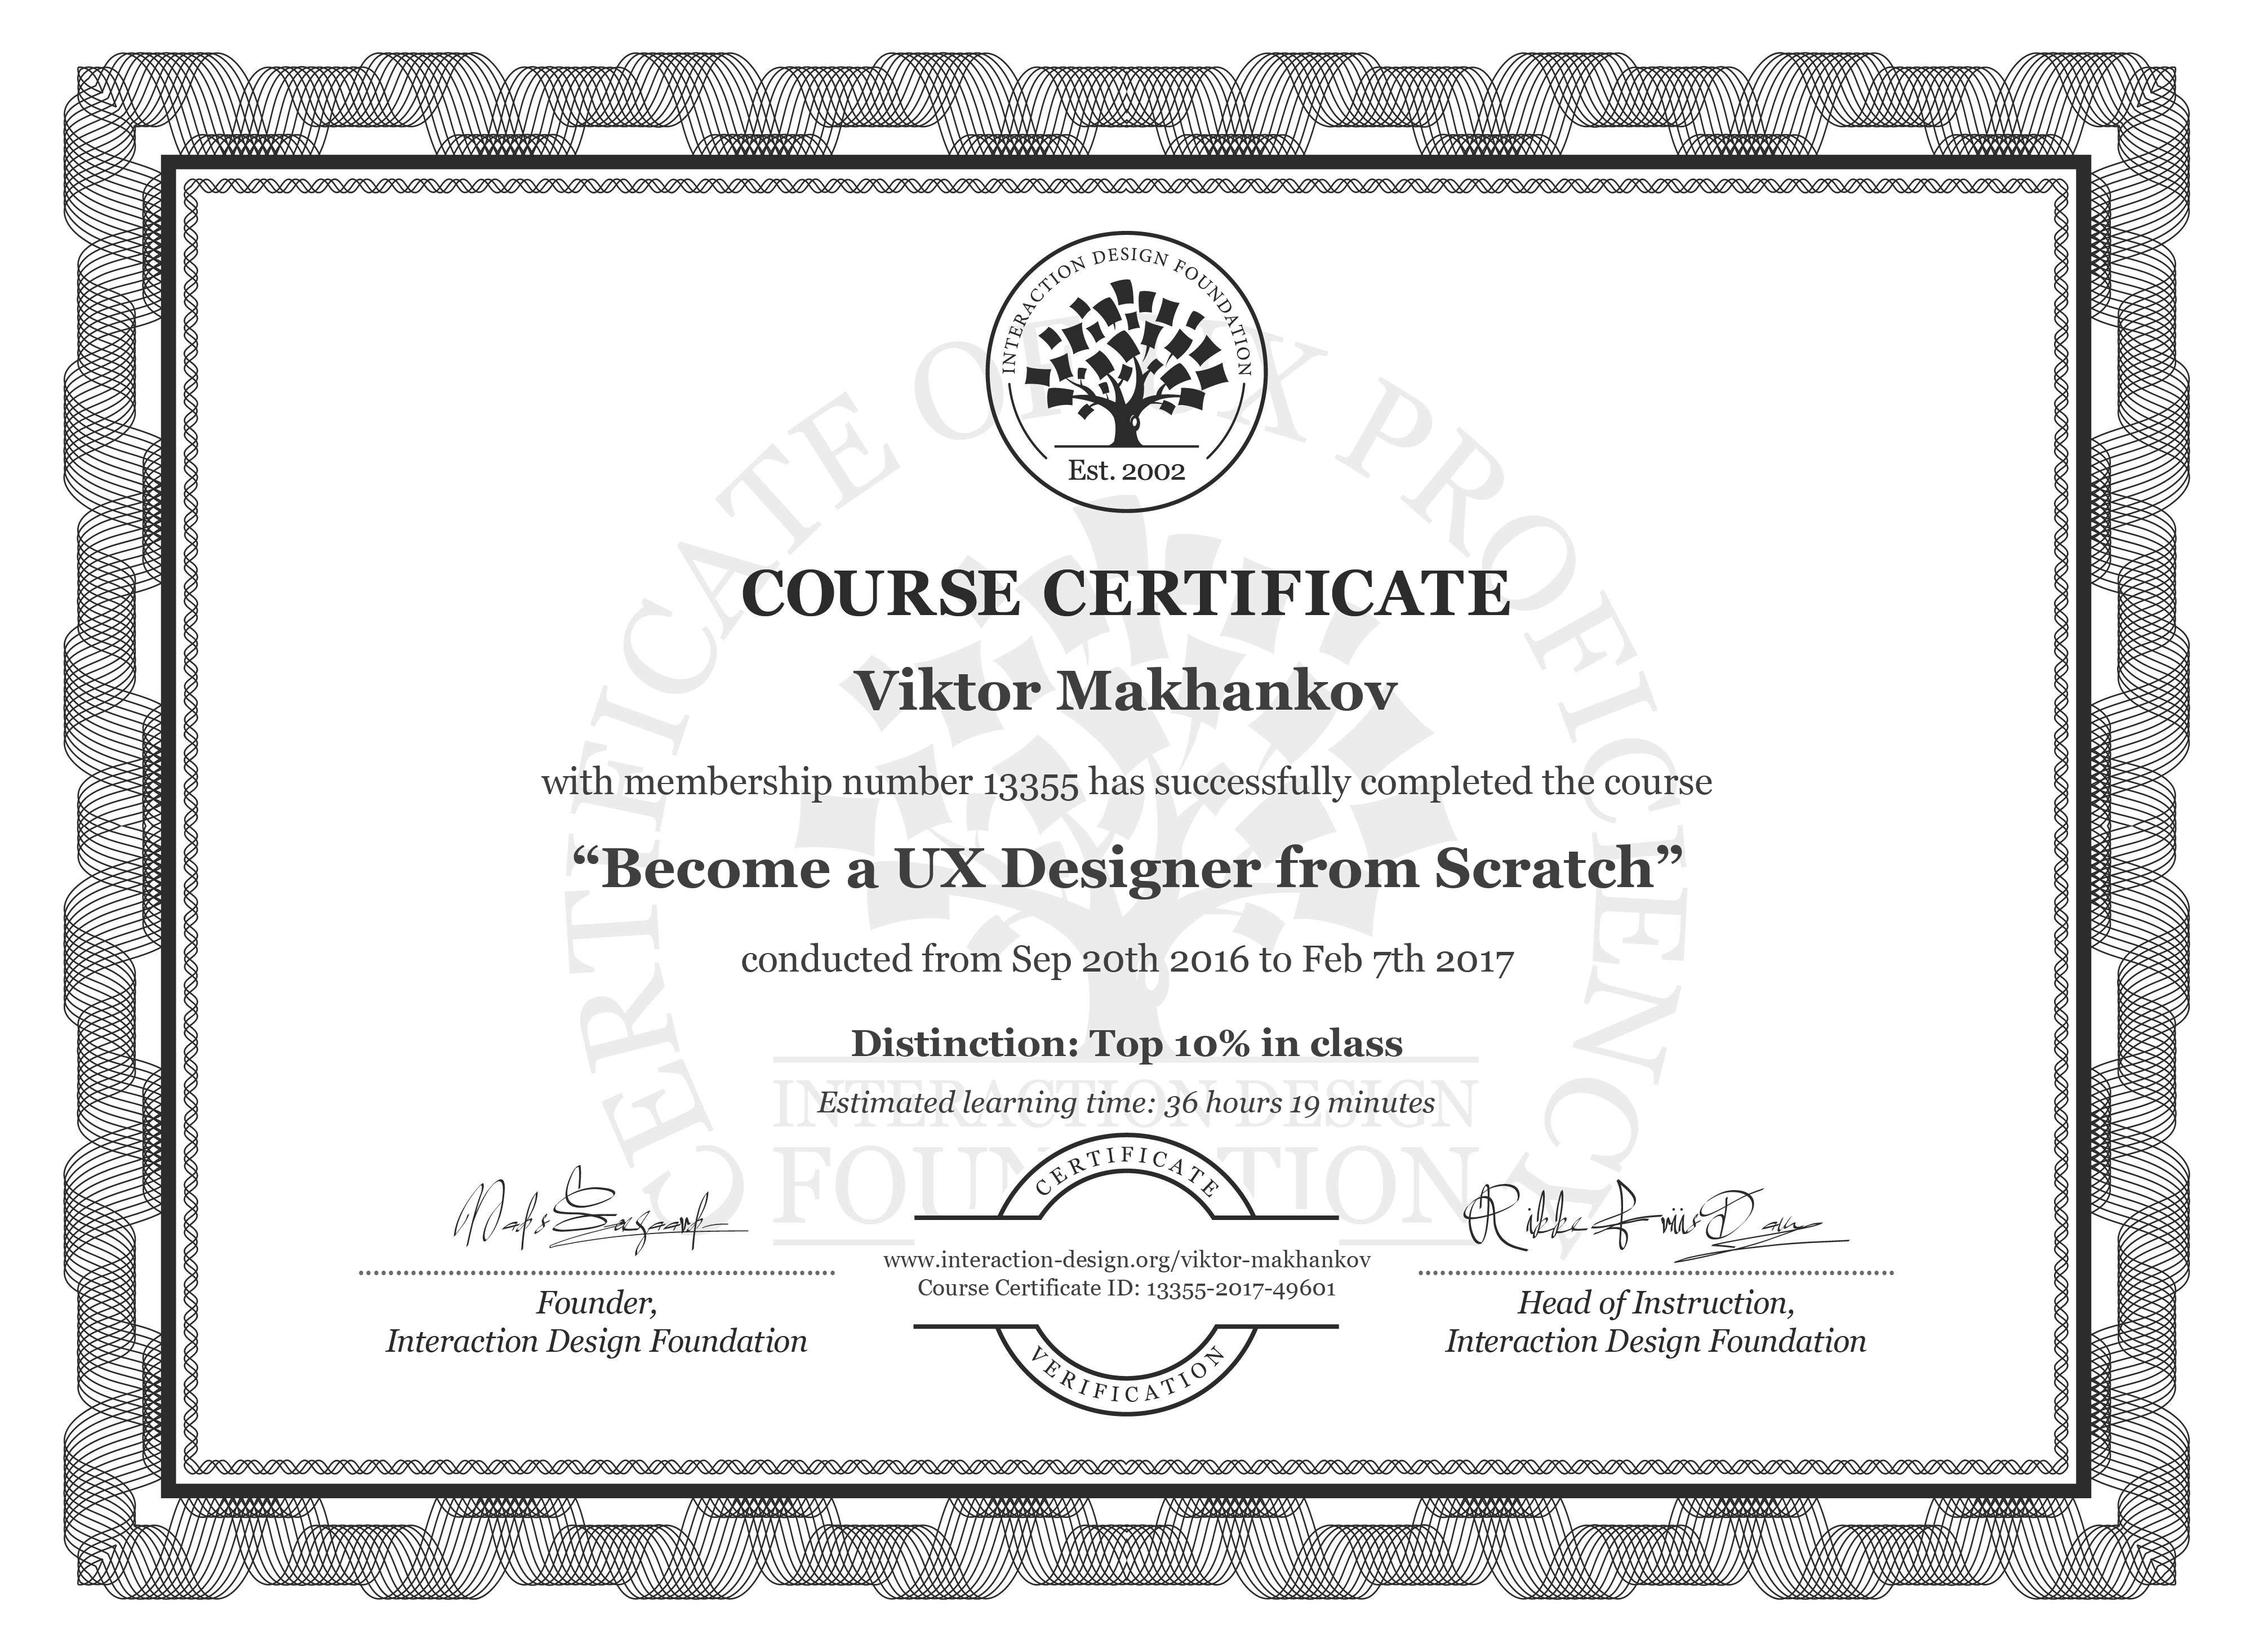 Viktor Makhankov's Course Certificate: Become a UX Designer from Scratch